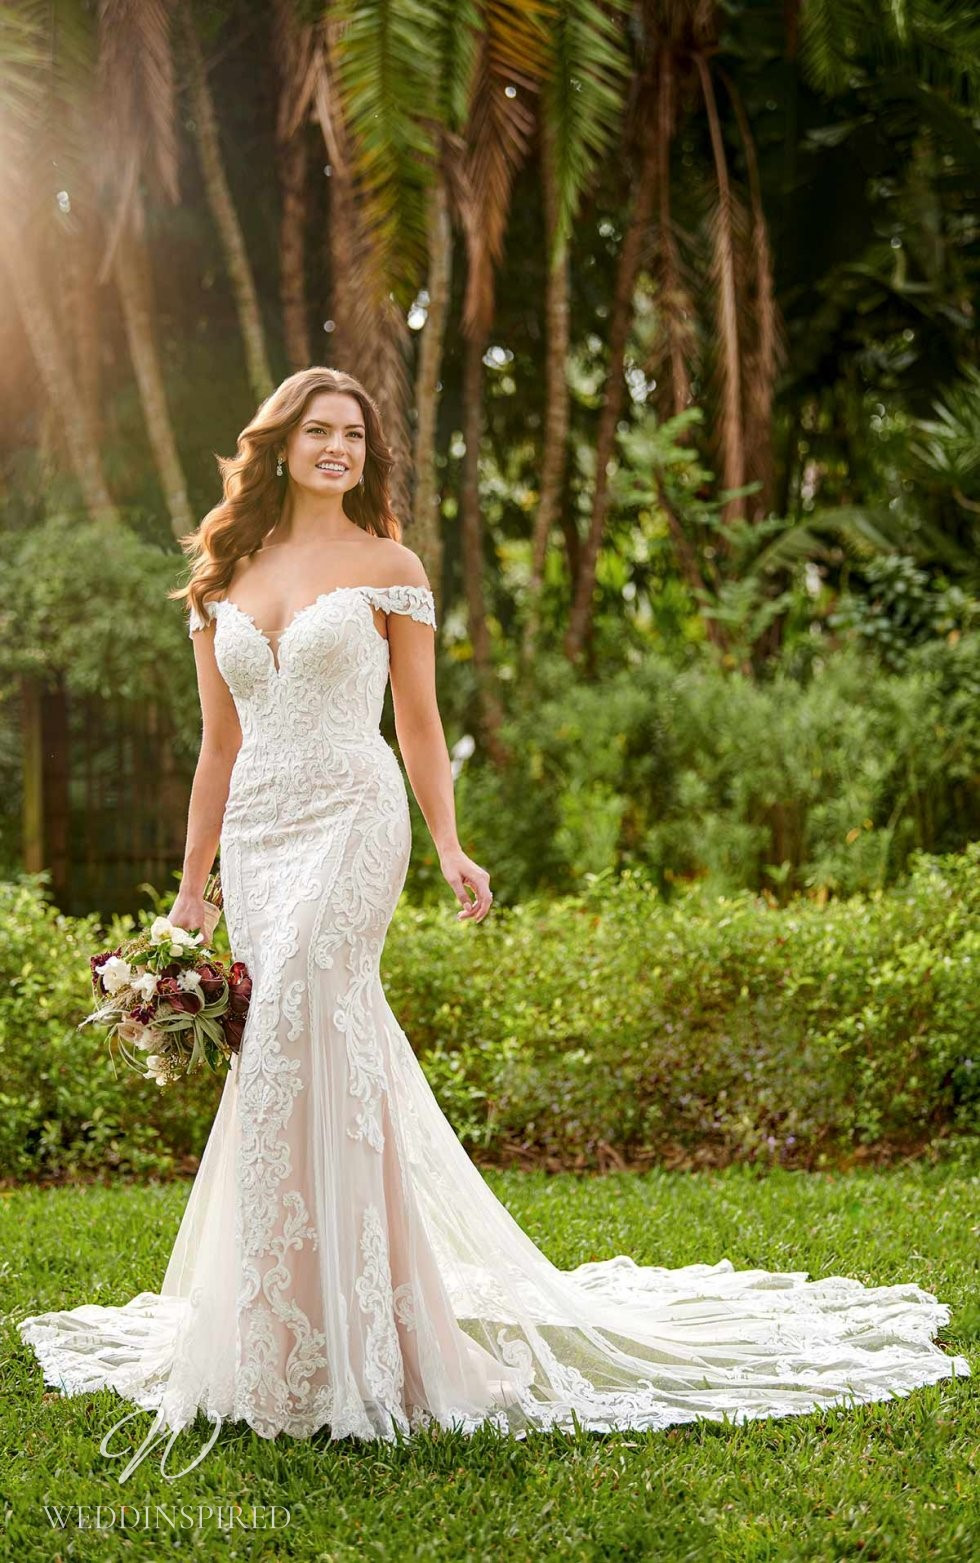 An Essense of Australia off the shoulder lace and tulle mermaid wedding dress with a train